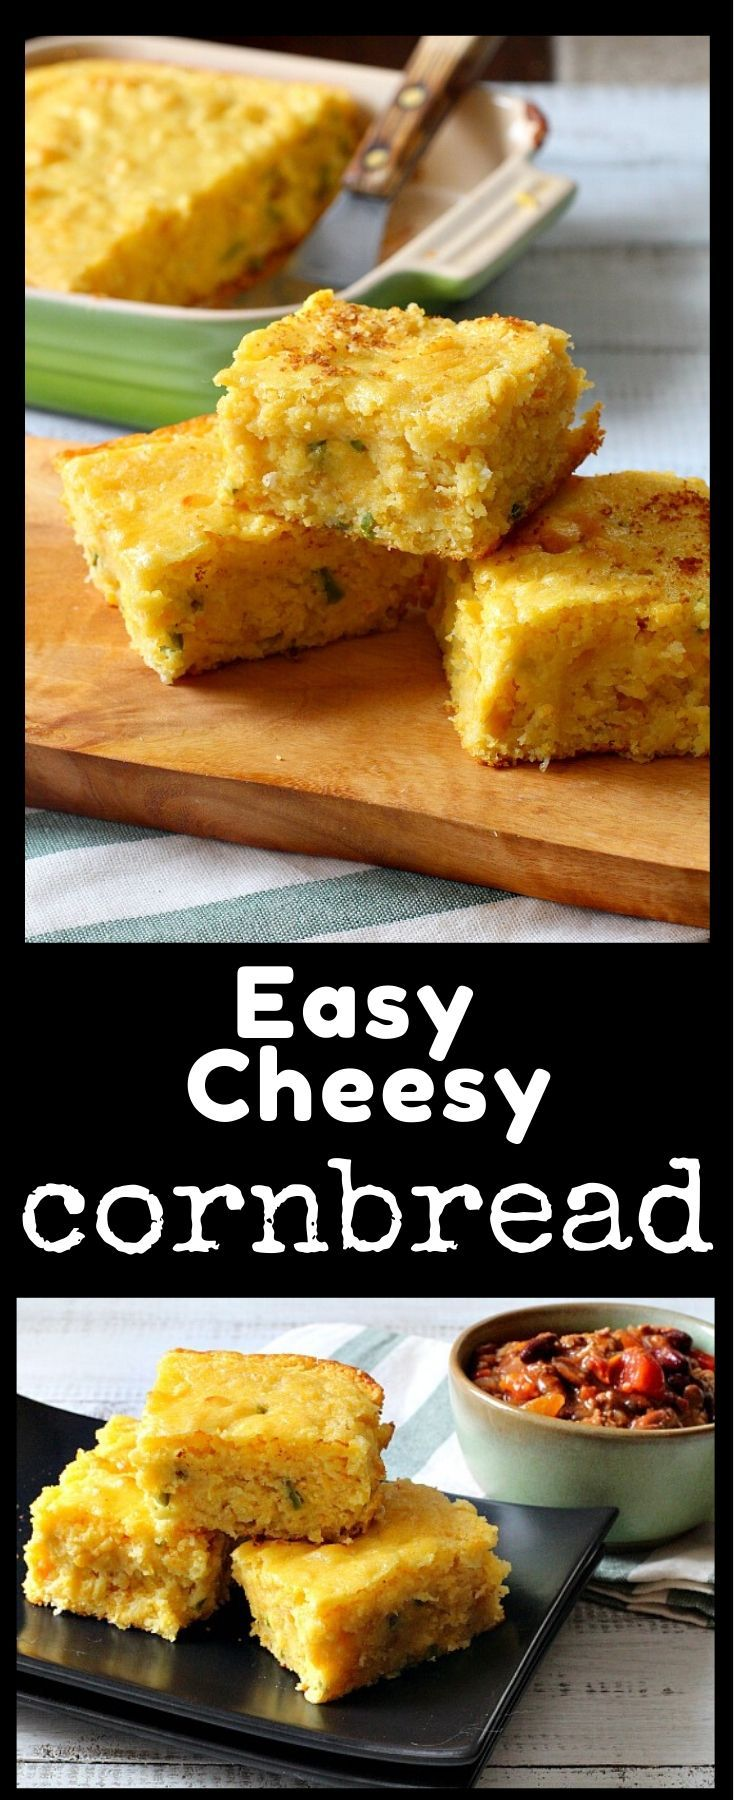 You D Almost Swear There Was Pudding In This Moist Cornbread Recipe With Jalapenos And Cheddar Cheese Sweet In 2020 Super Moist Cornbread Recipes Corn Bread Recipe